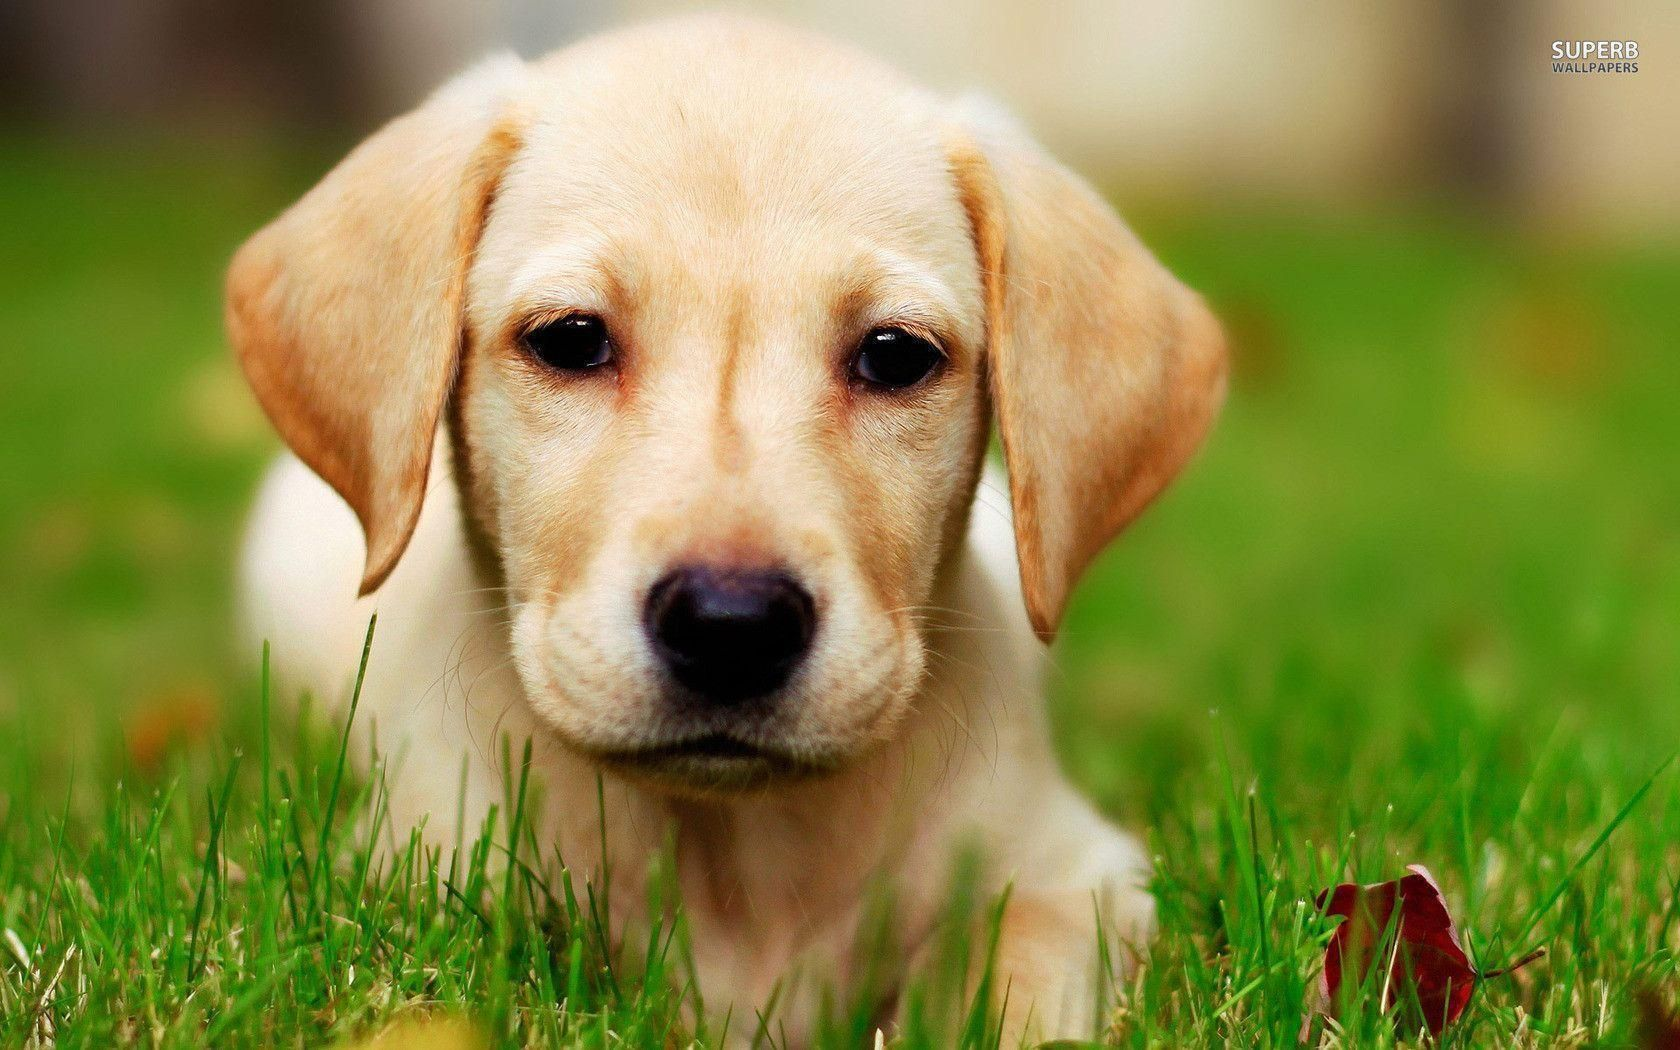 Labrador Dog Hd Wallpapers And Backgrounds 29 Http Www Urdunewtrend Com Hd Wallpapers Animal Labrador Dog Labrador Dog Labrador Retrievers Hunde Labrador